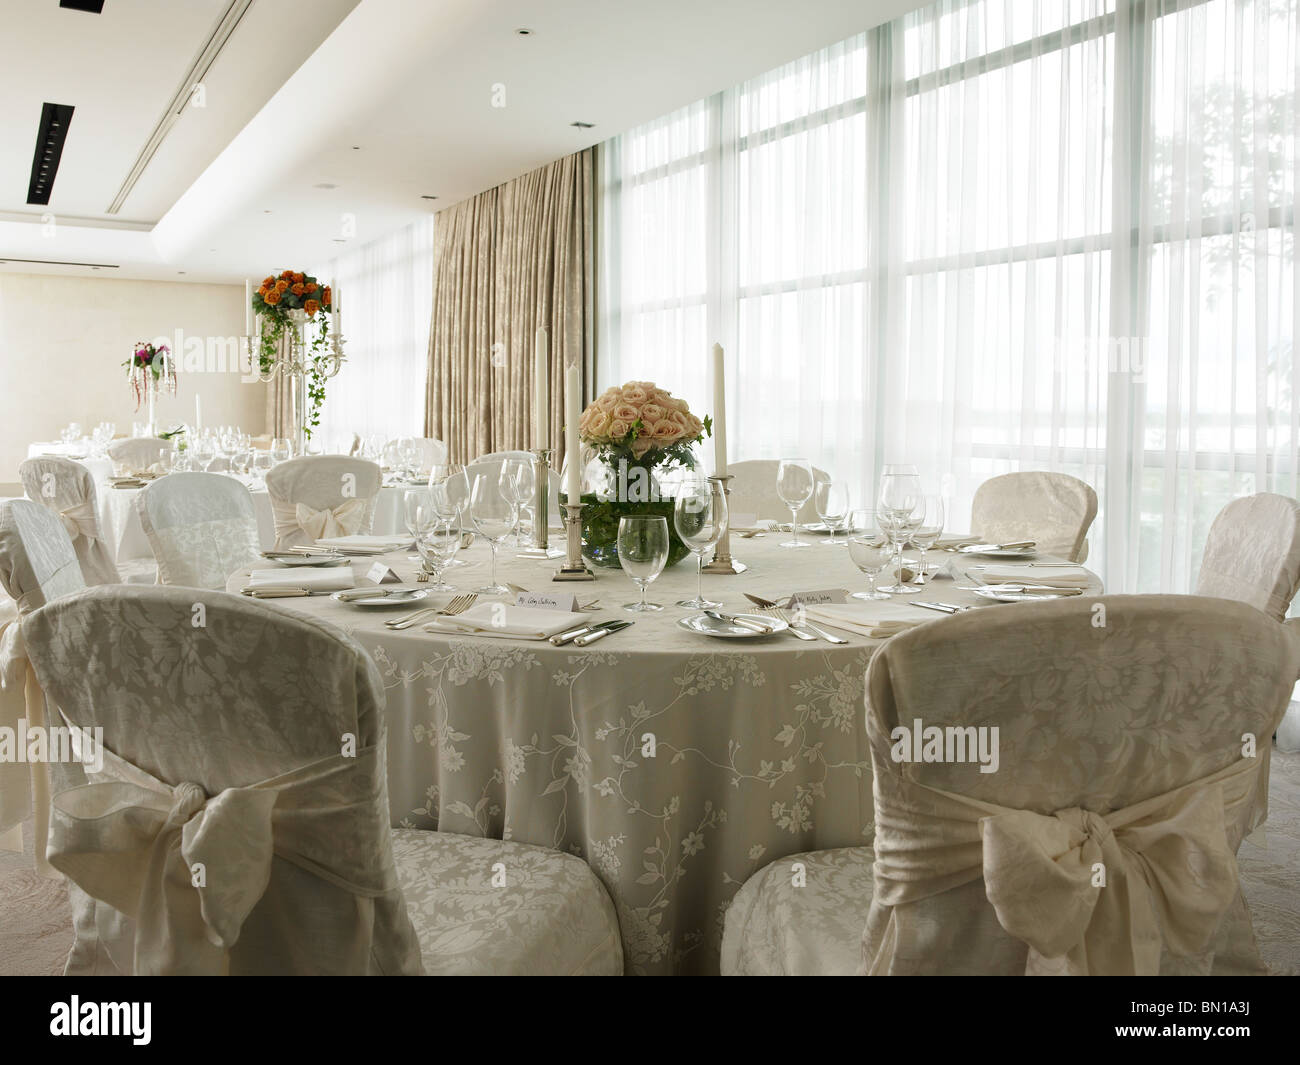 Wedding table set-up in the Event suite at the g Hotel in Galway. & Wedding table set-up in the Event suite at the g Hotel in Galway ...